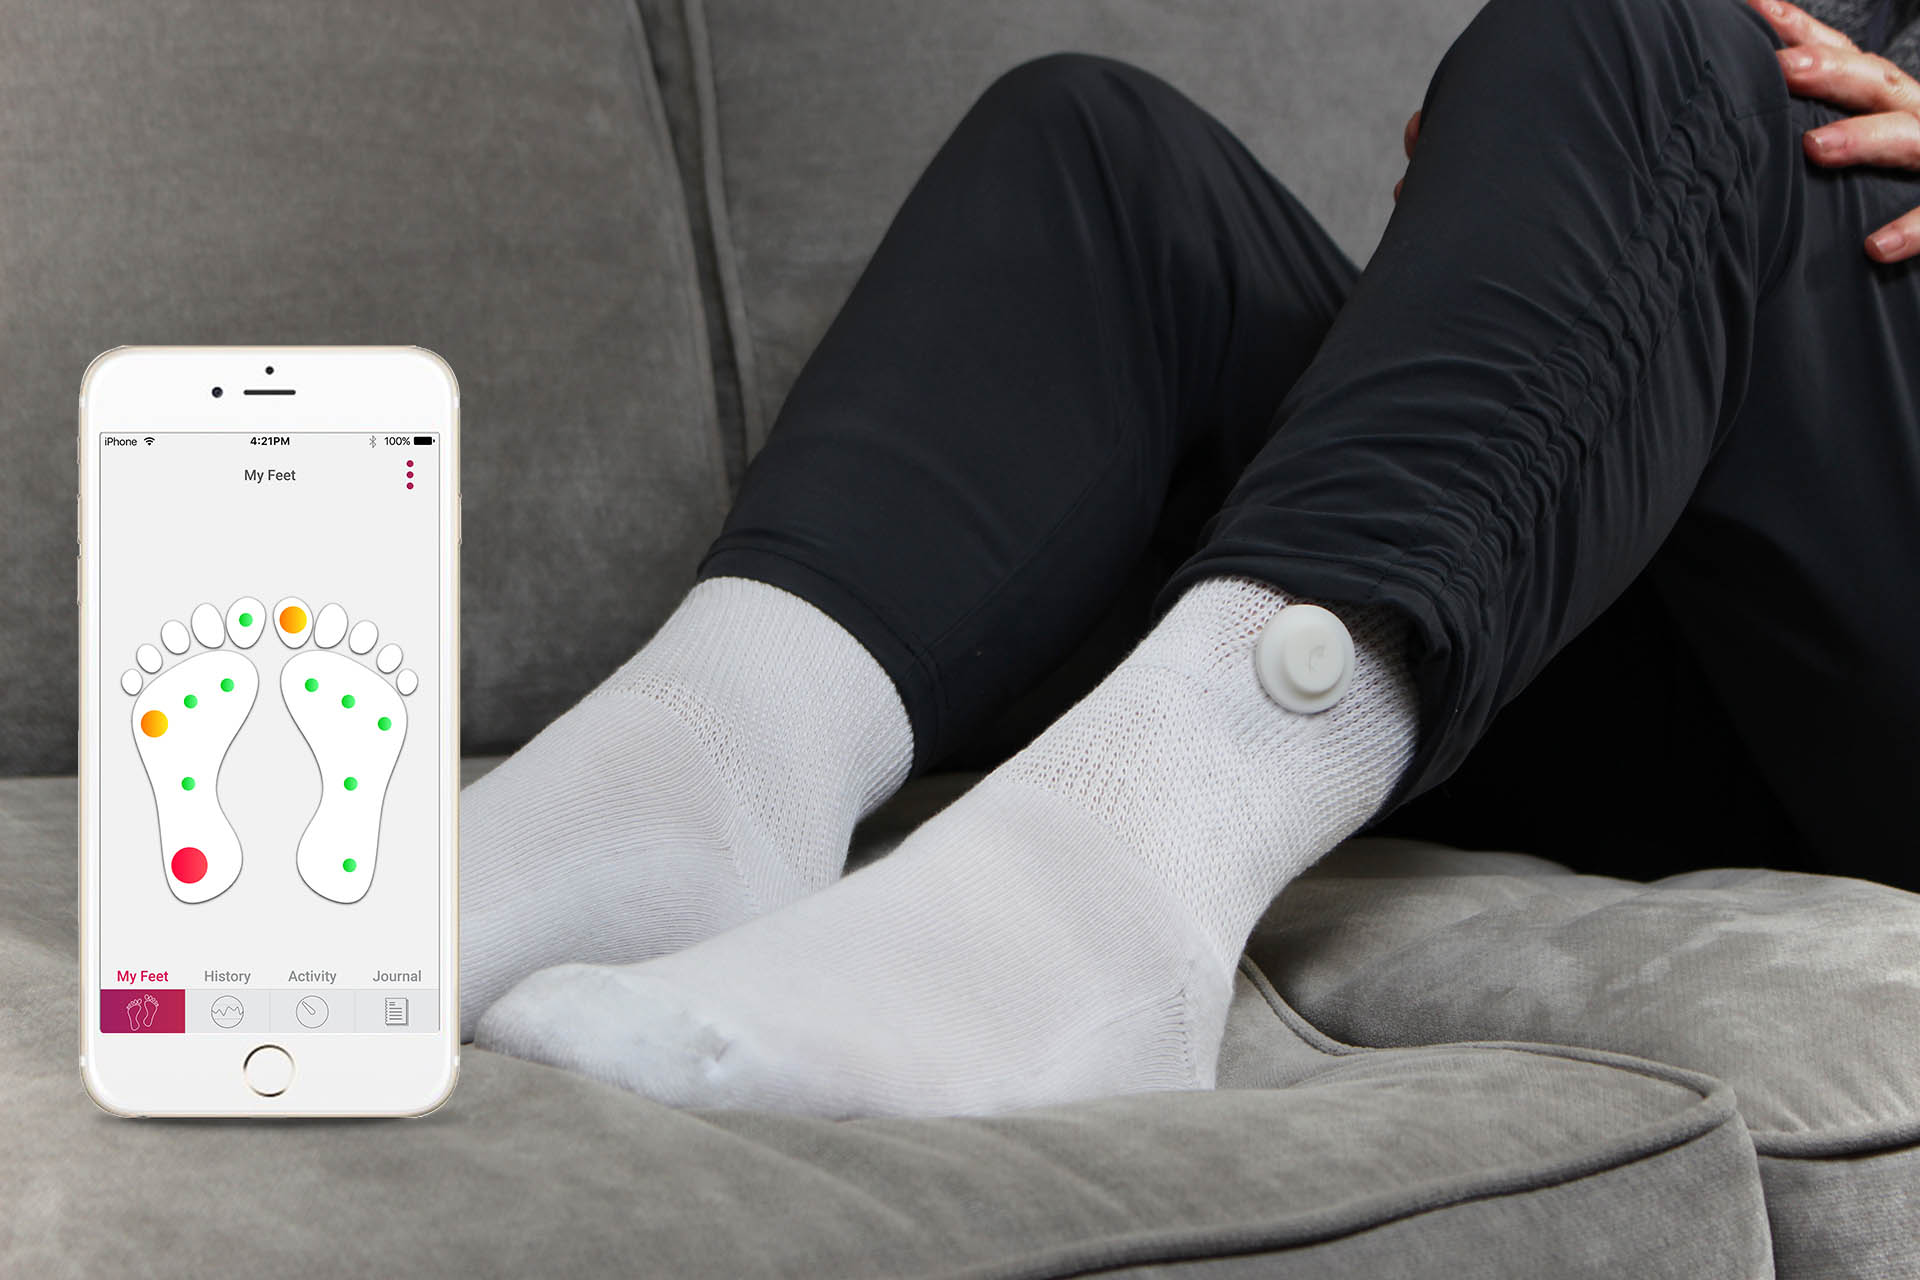 Siren Care's Smart Socks Help Monitor the Health of People with Diabetes